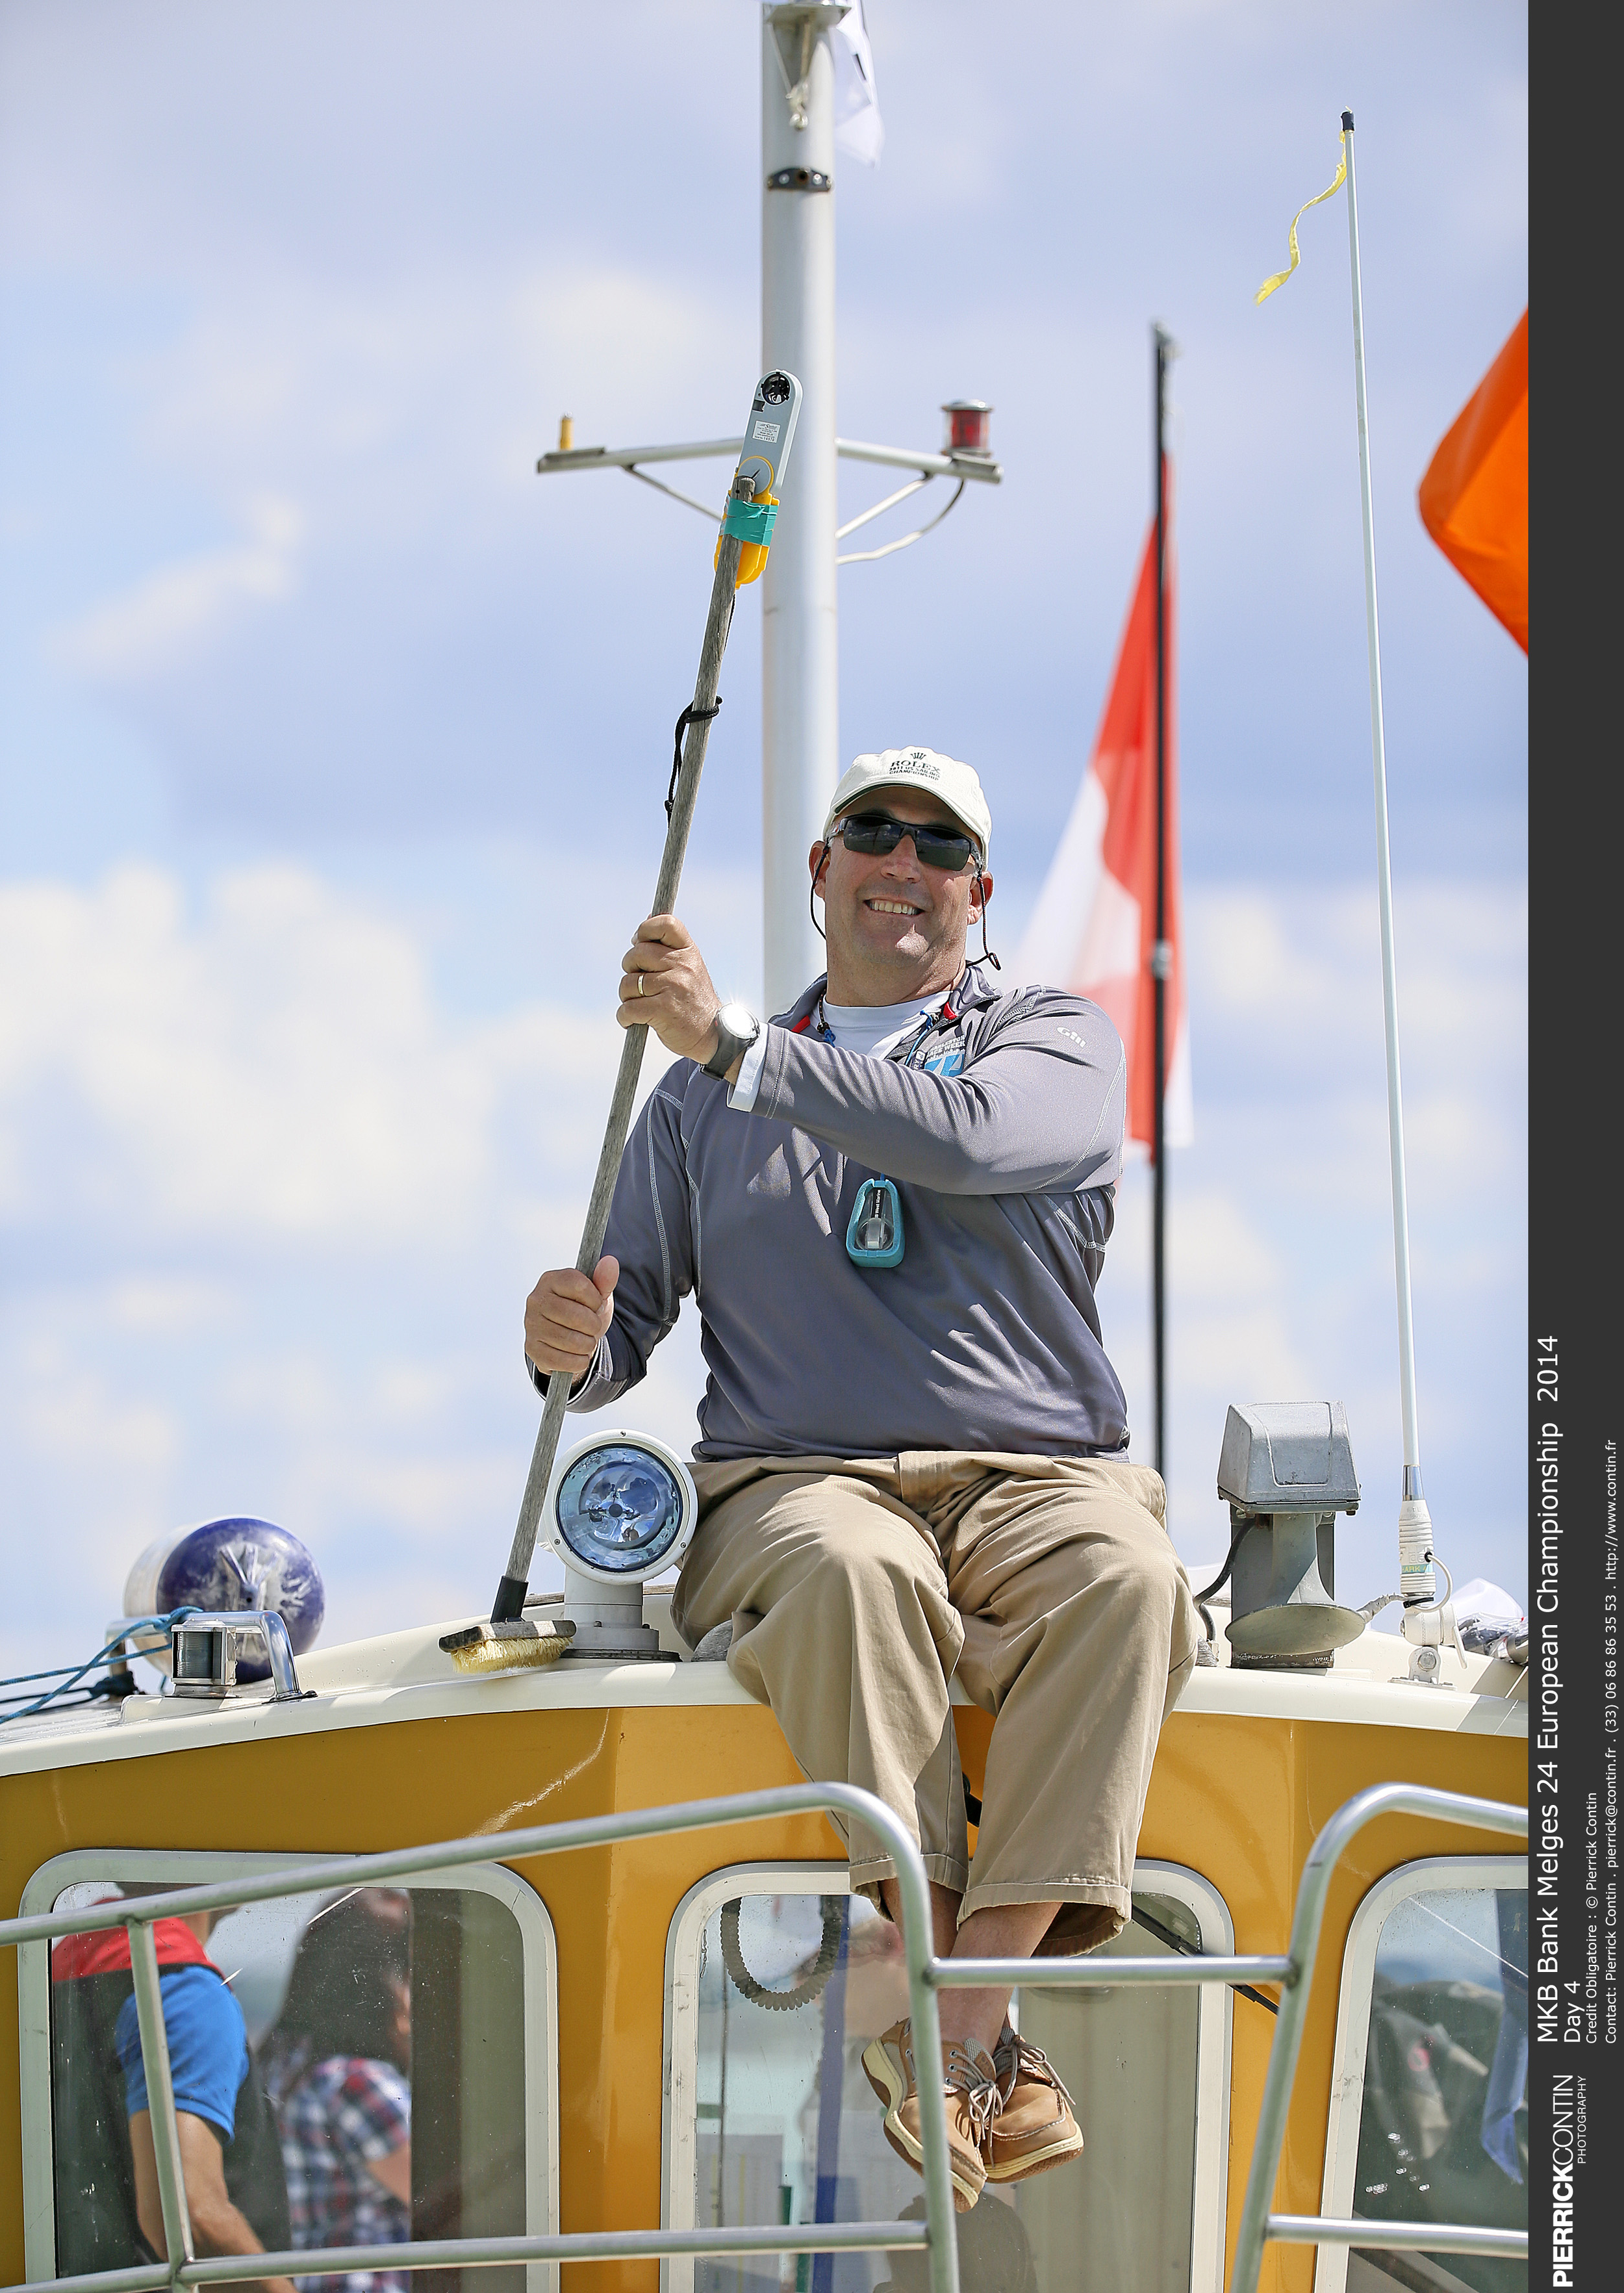 Hank Stuart at the 2014 Melges 24 European Championship in Hungary - photo Pierrick Contin